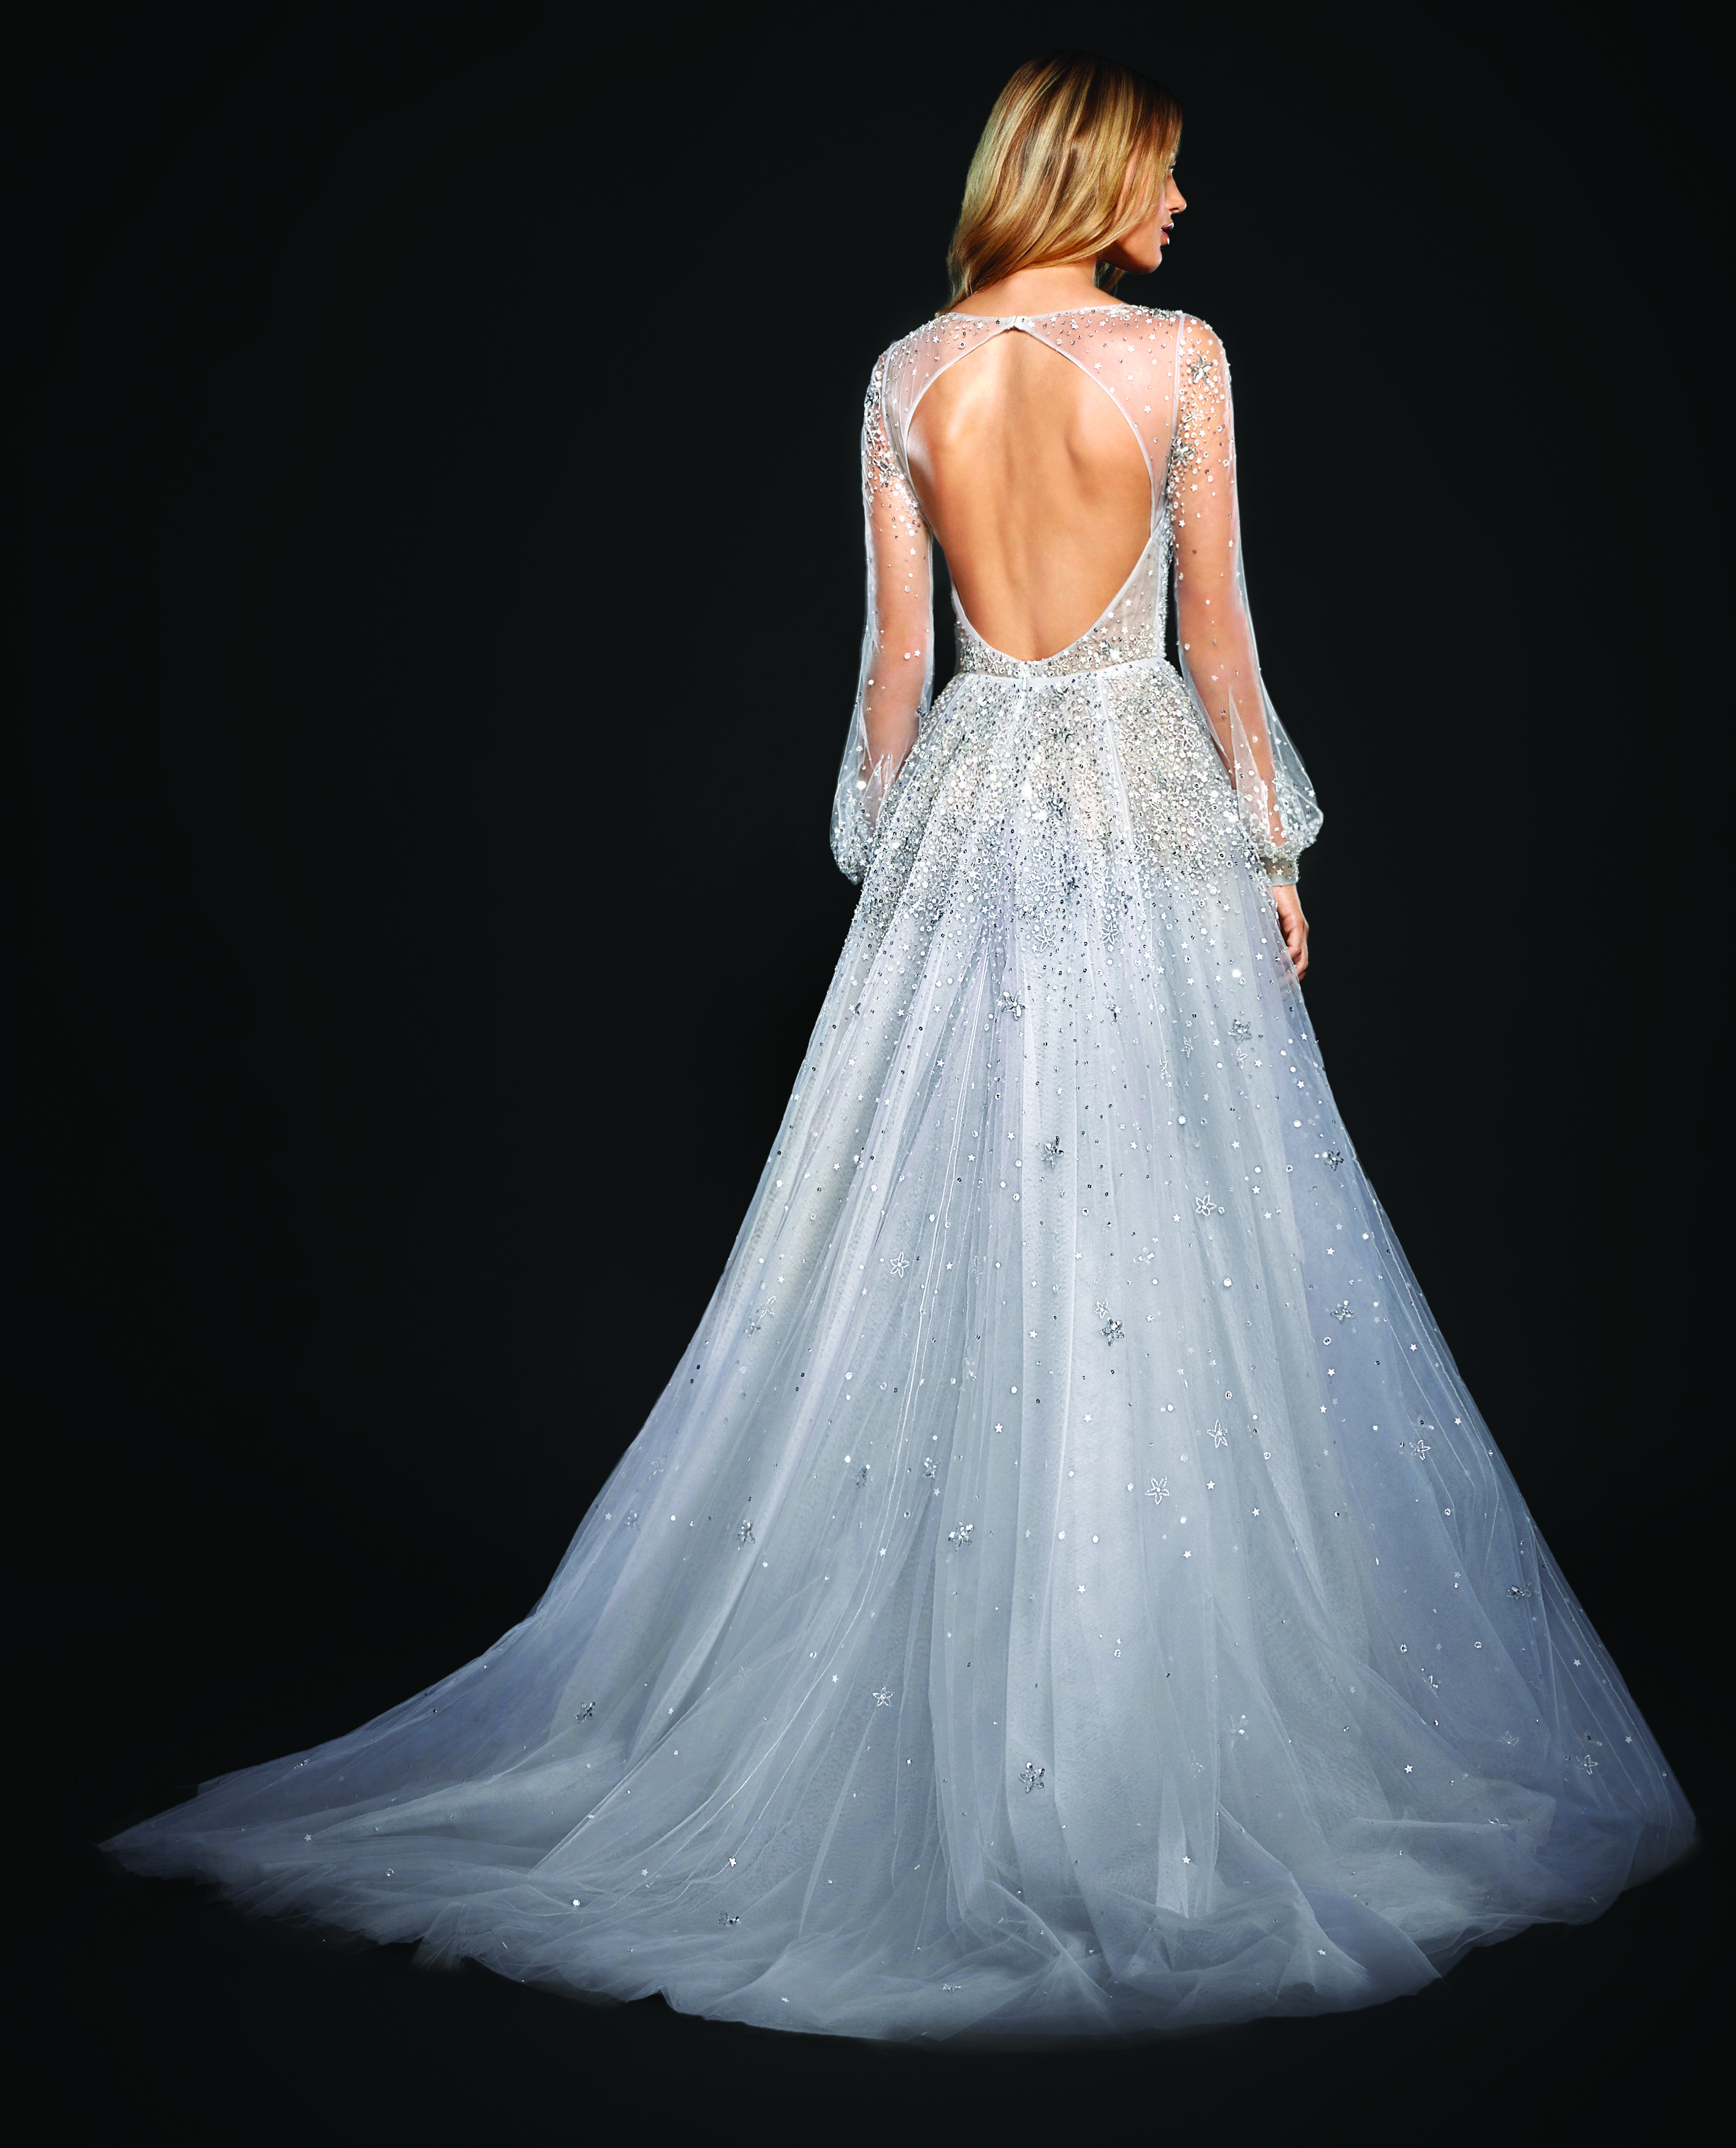 Bridal gowns and wedding dresses by jlm couture style lumi